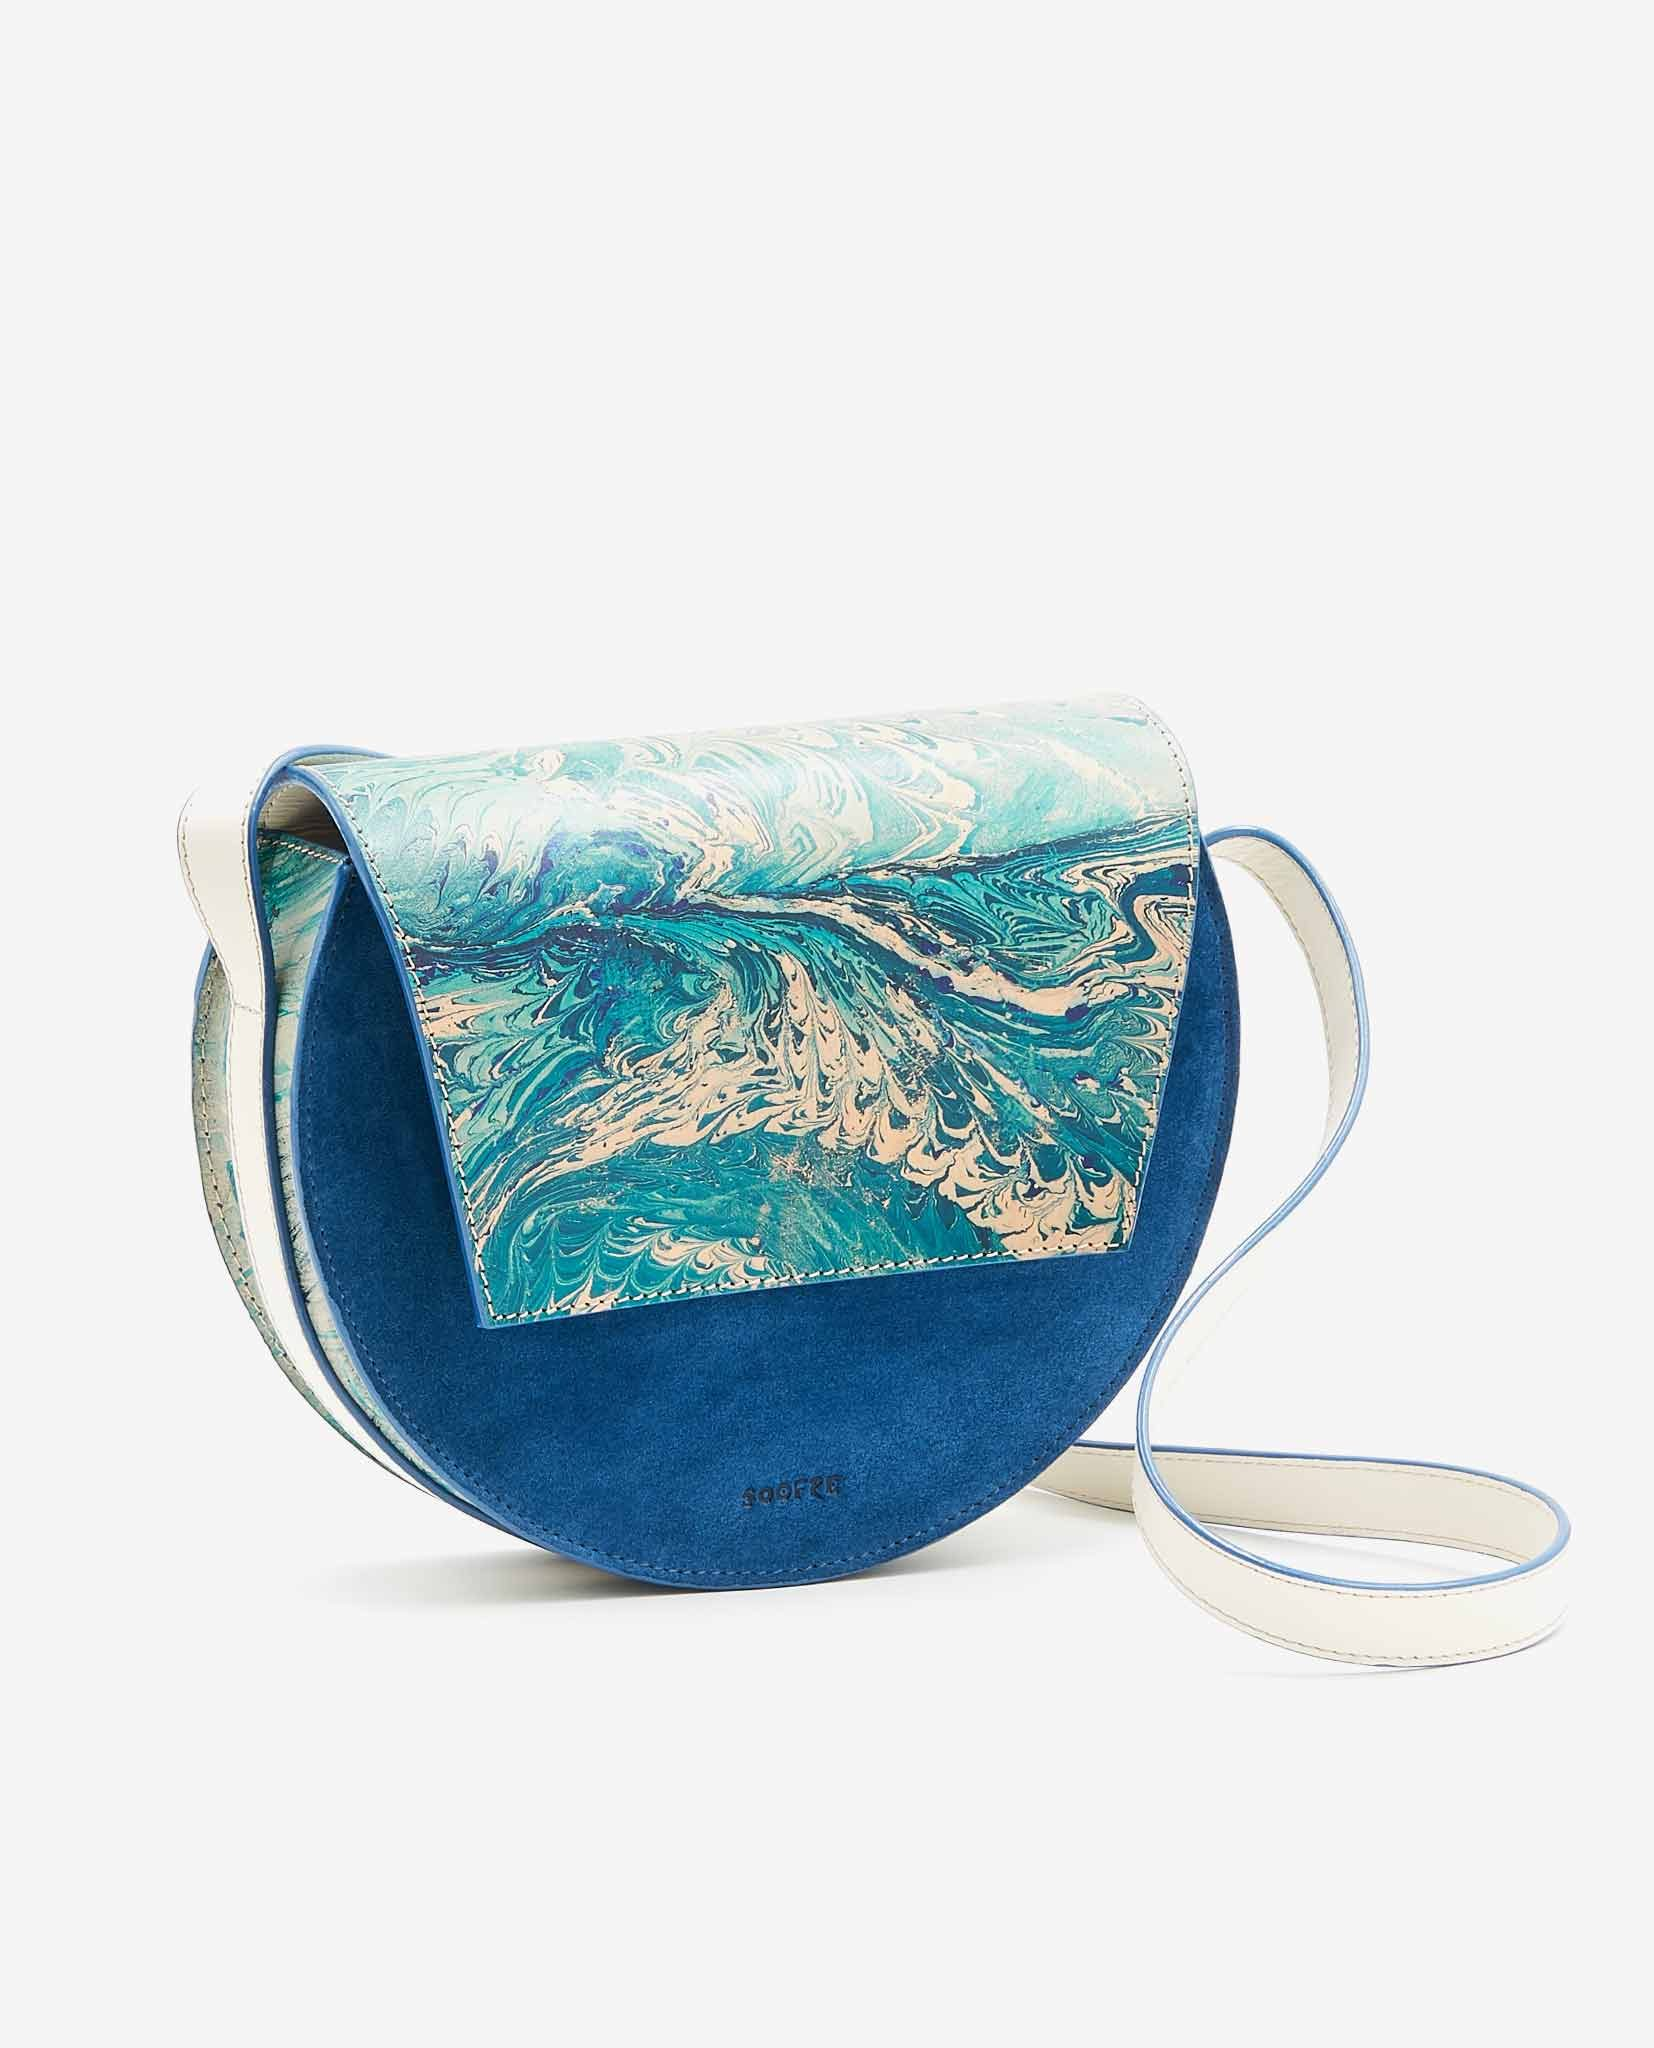 SOOFRE Berlin unique Crossbody Purse marble turquoise sapphire blue